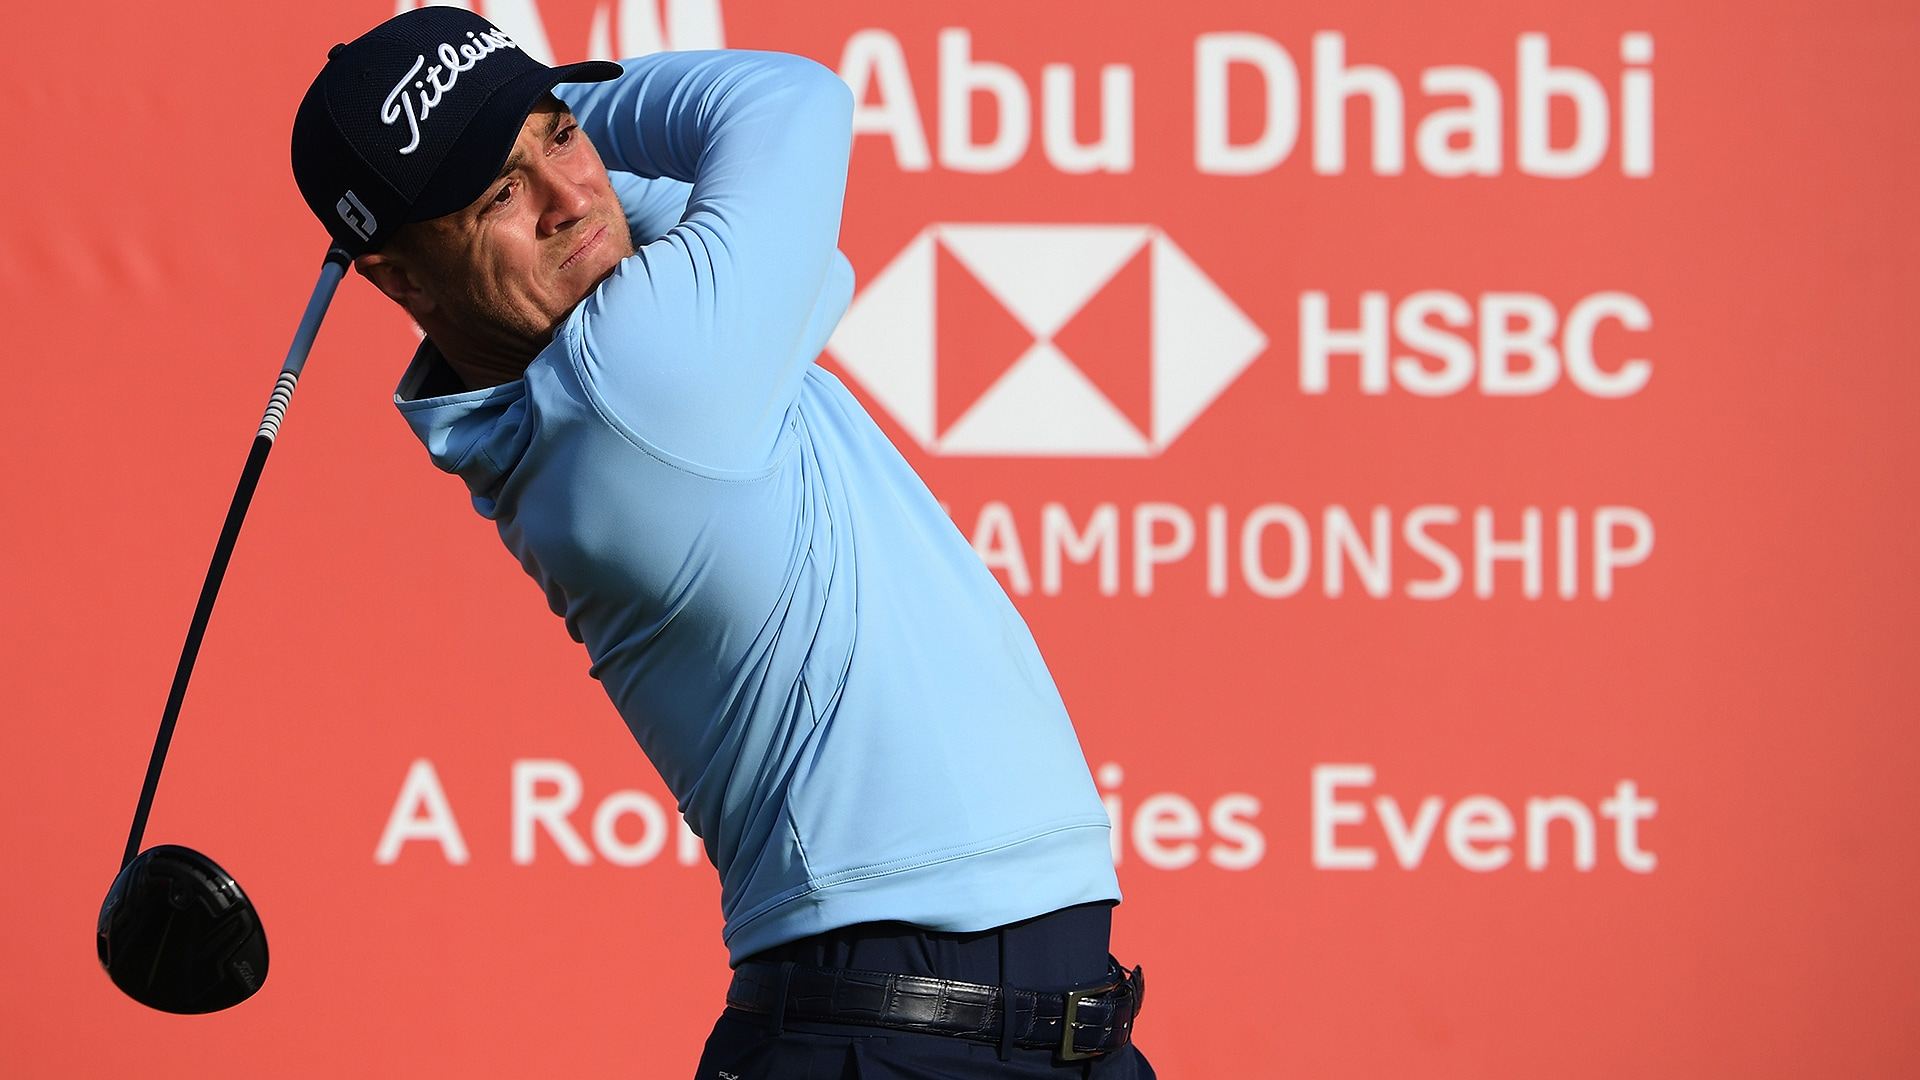 Justin Thomas at the Abu Dhabi HSBC Championship